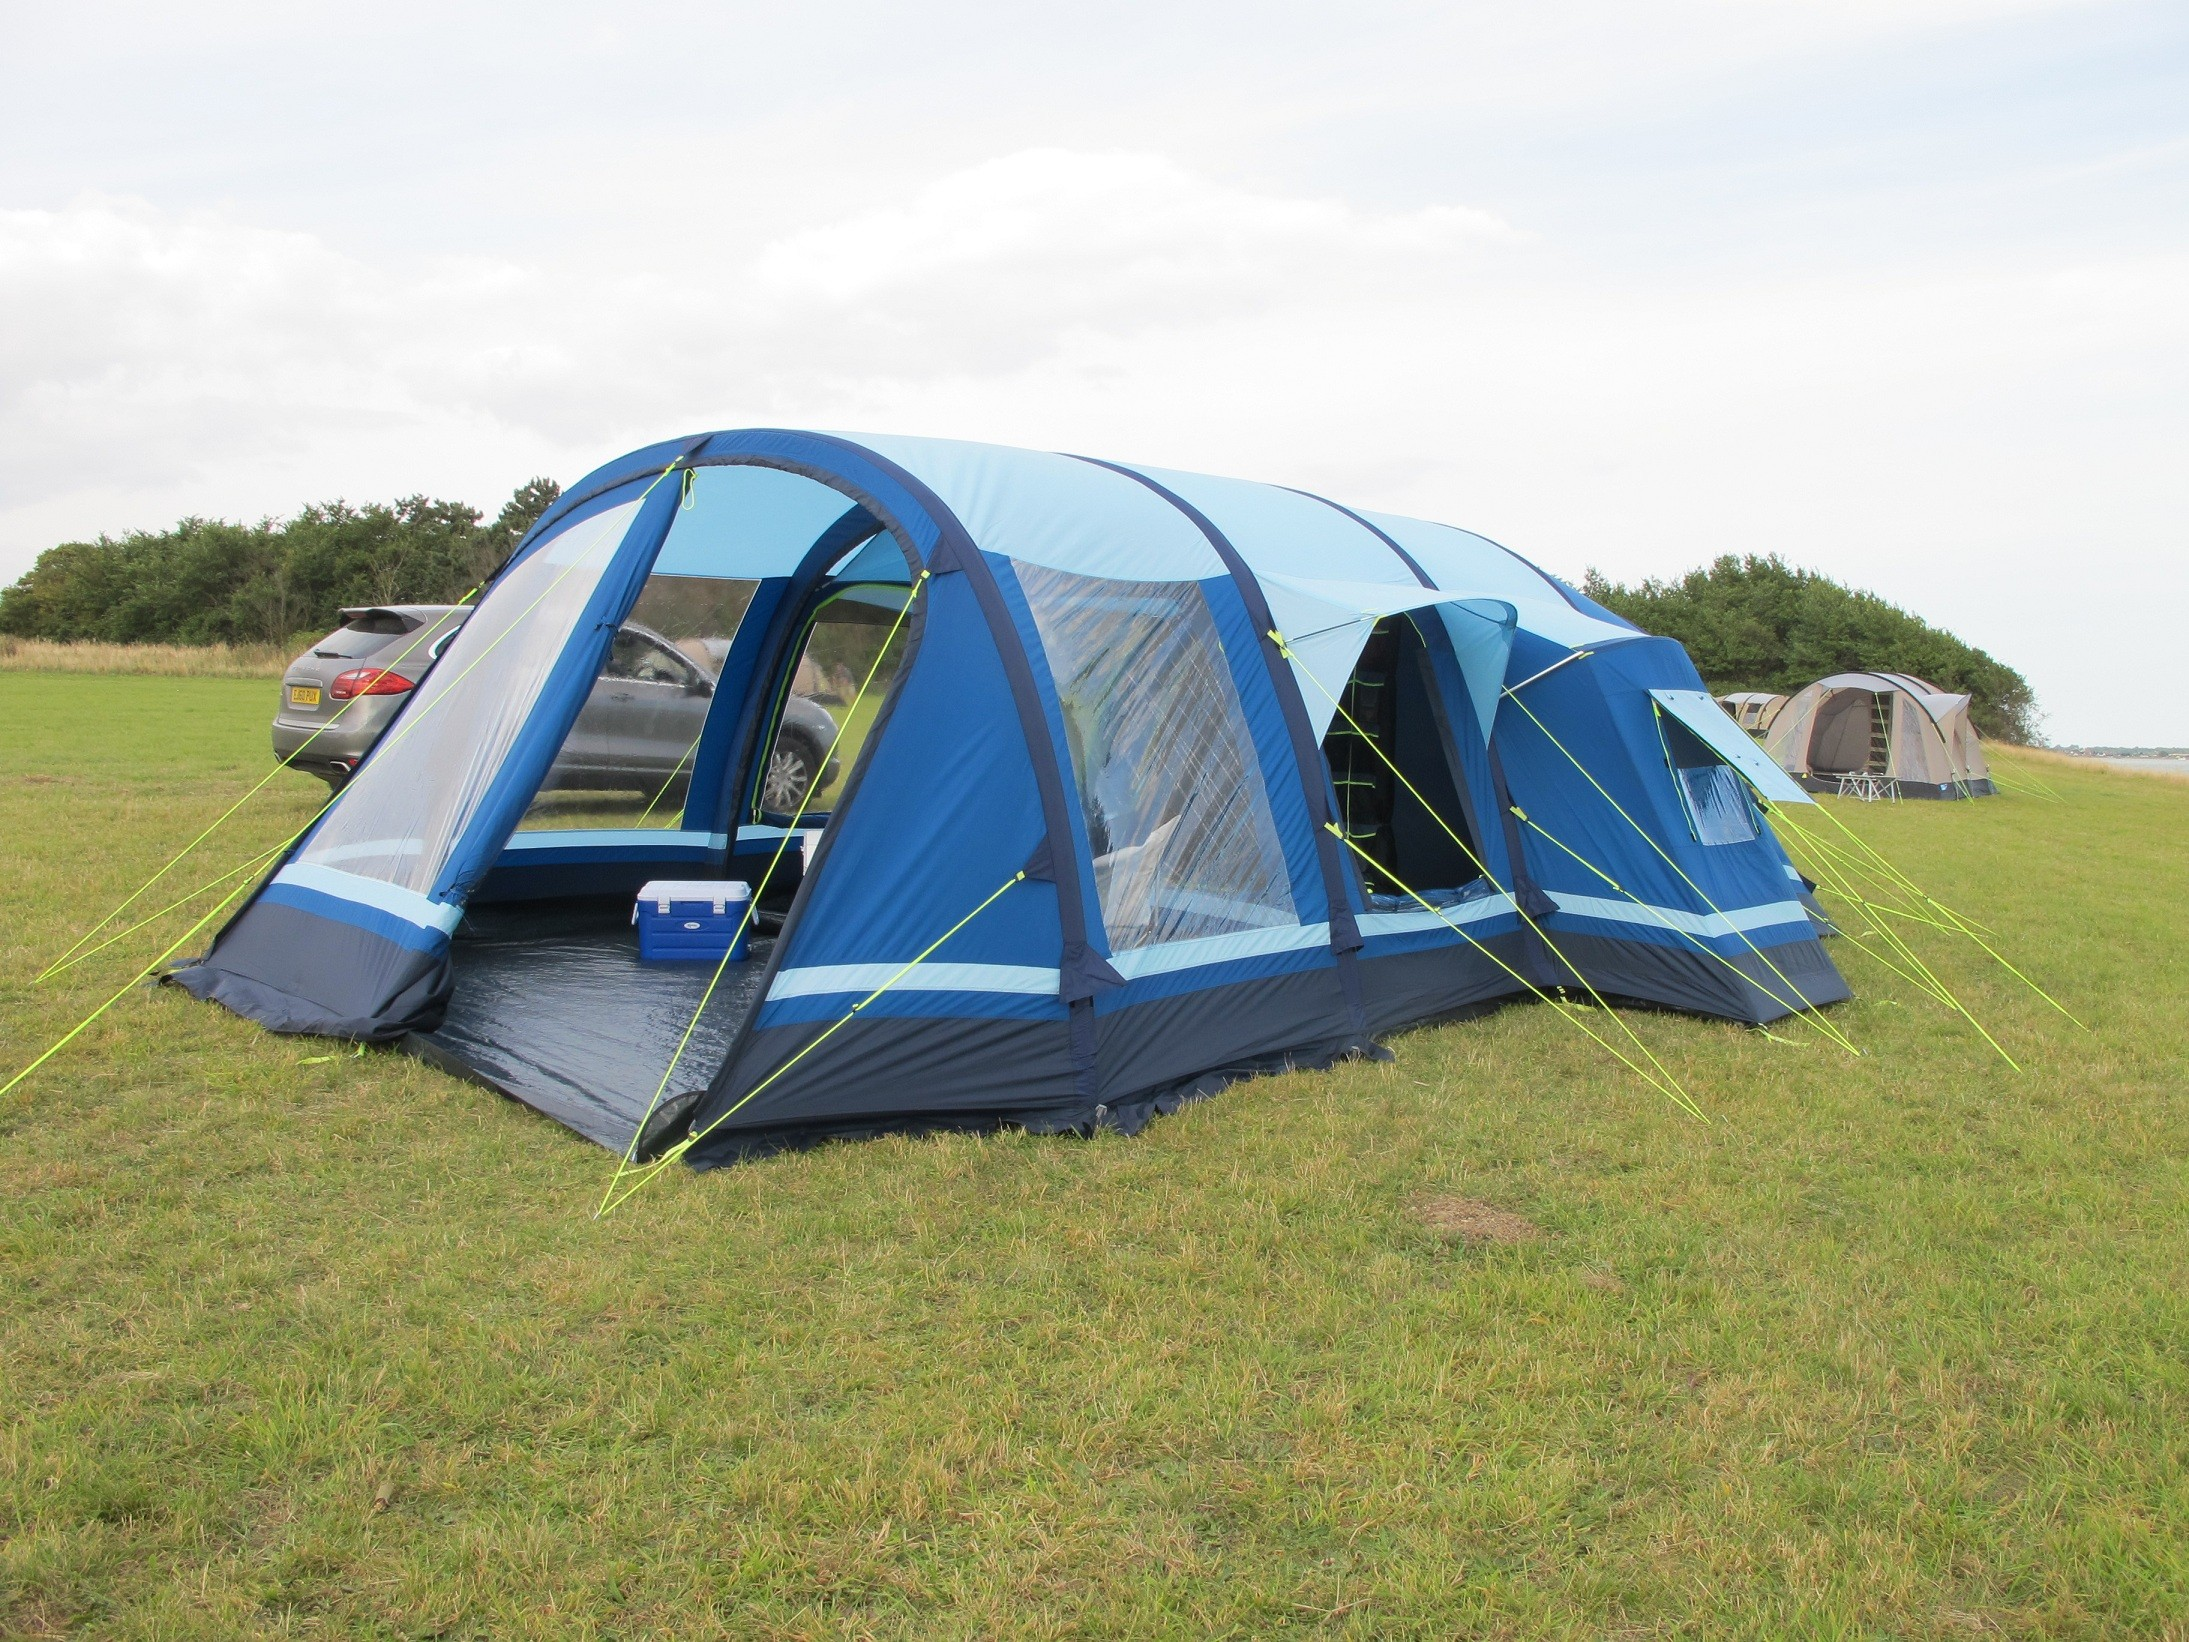 Kampa Filey 6 AirFrame Tent Package by Kampa for £1,985.00